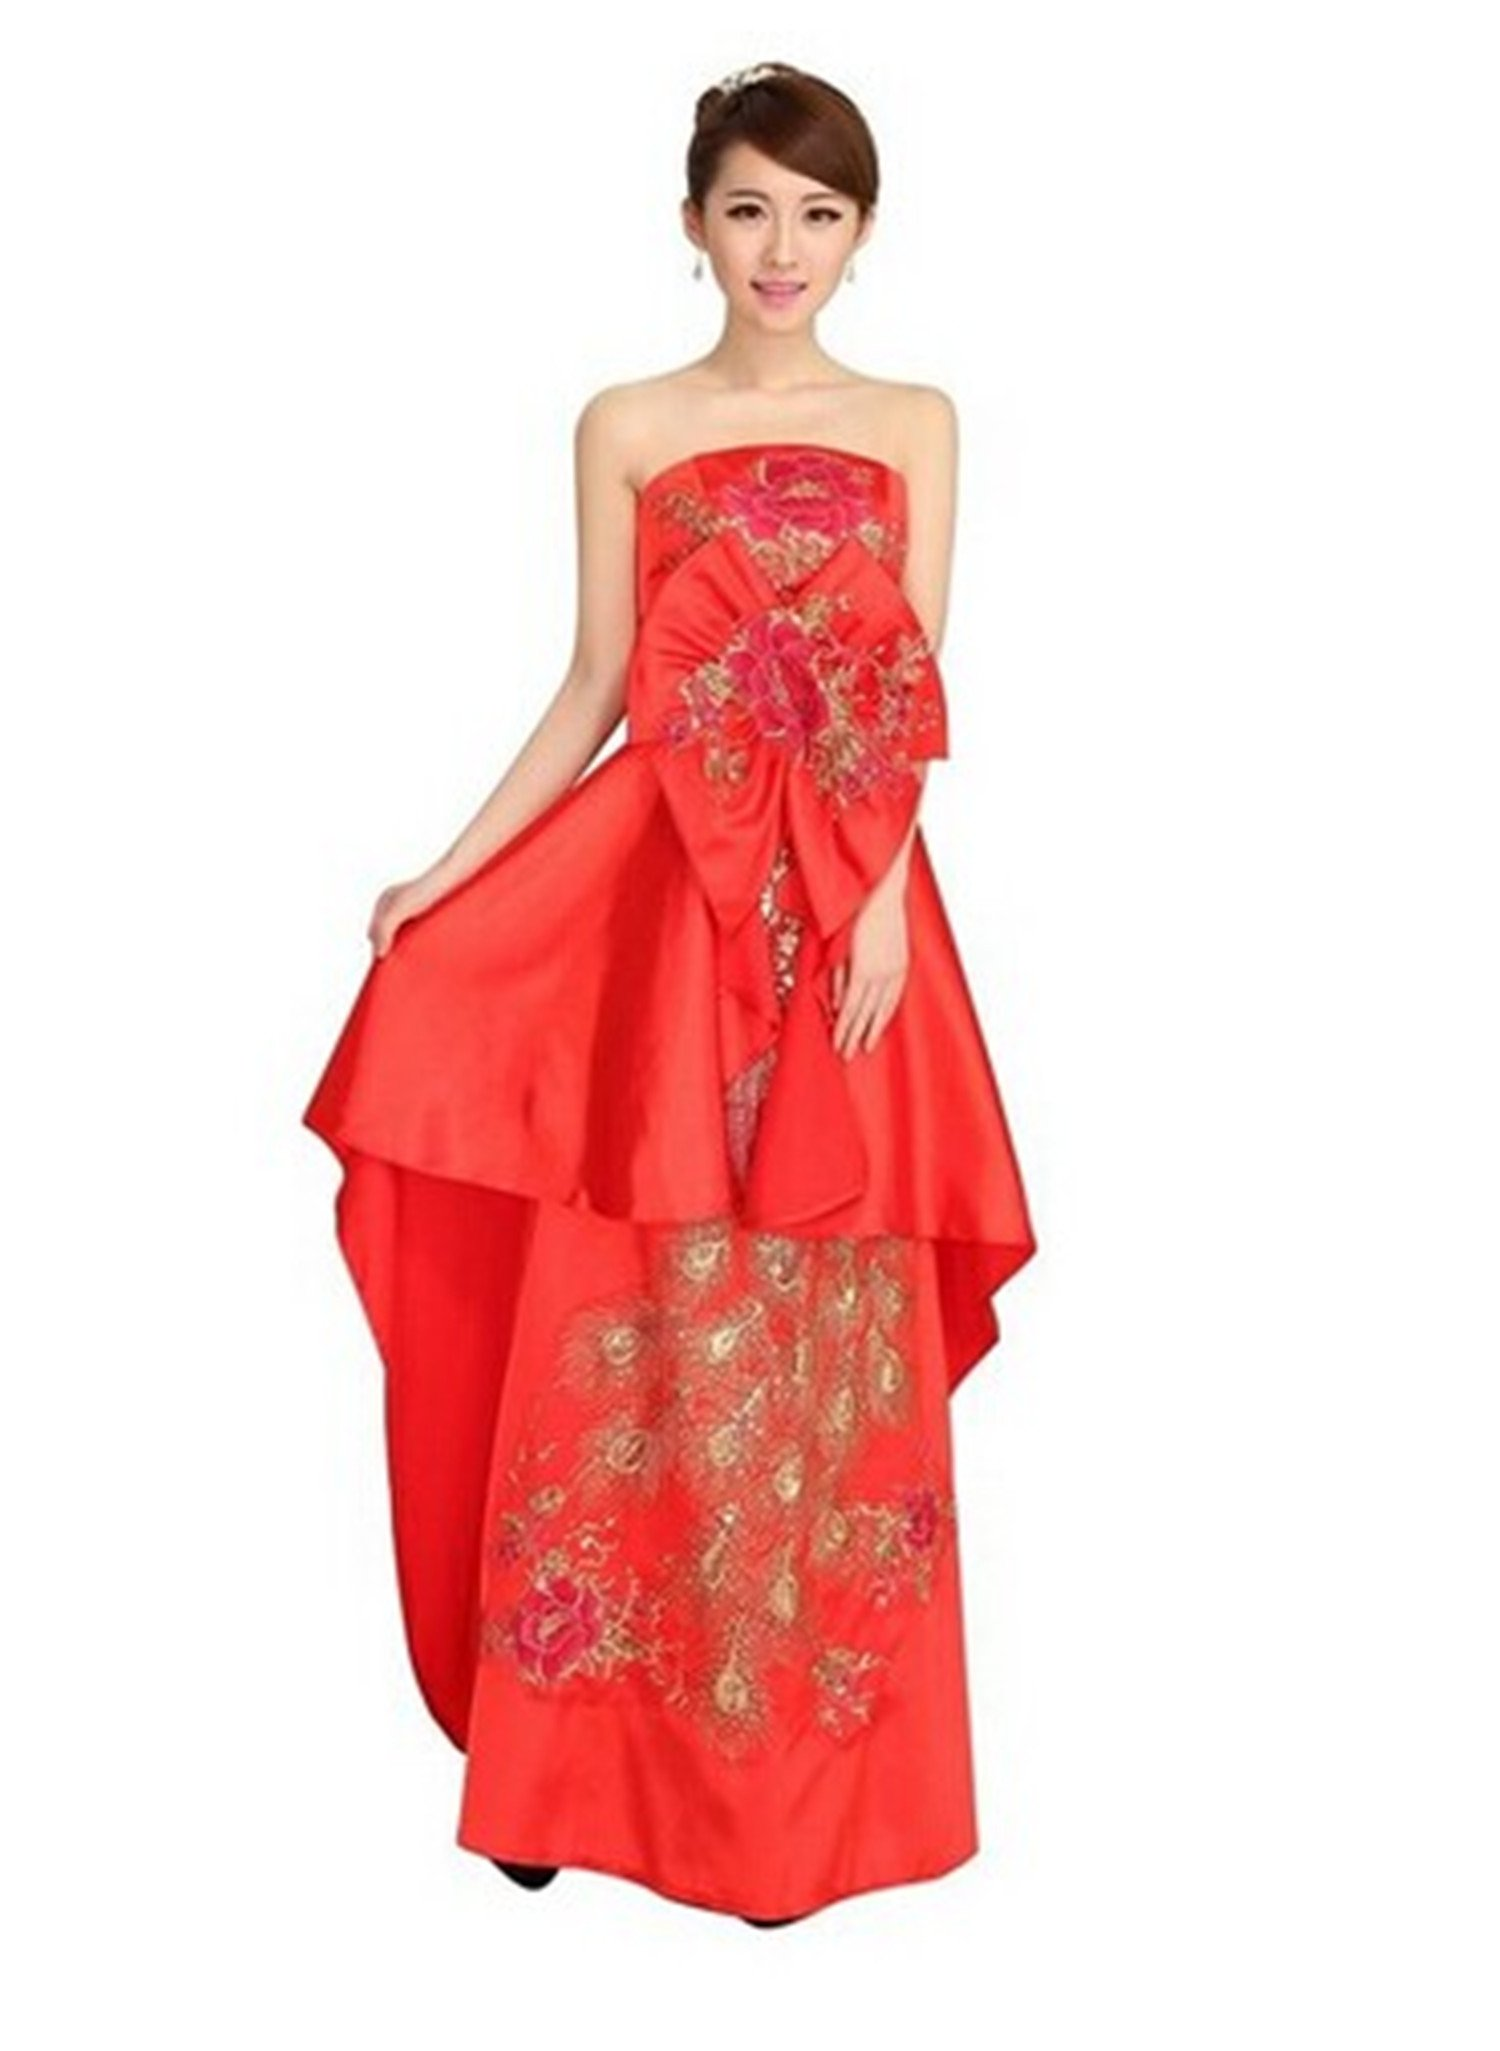 Women's new wedding dress cheongsam toast (4)